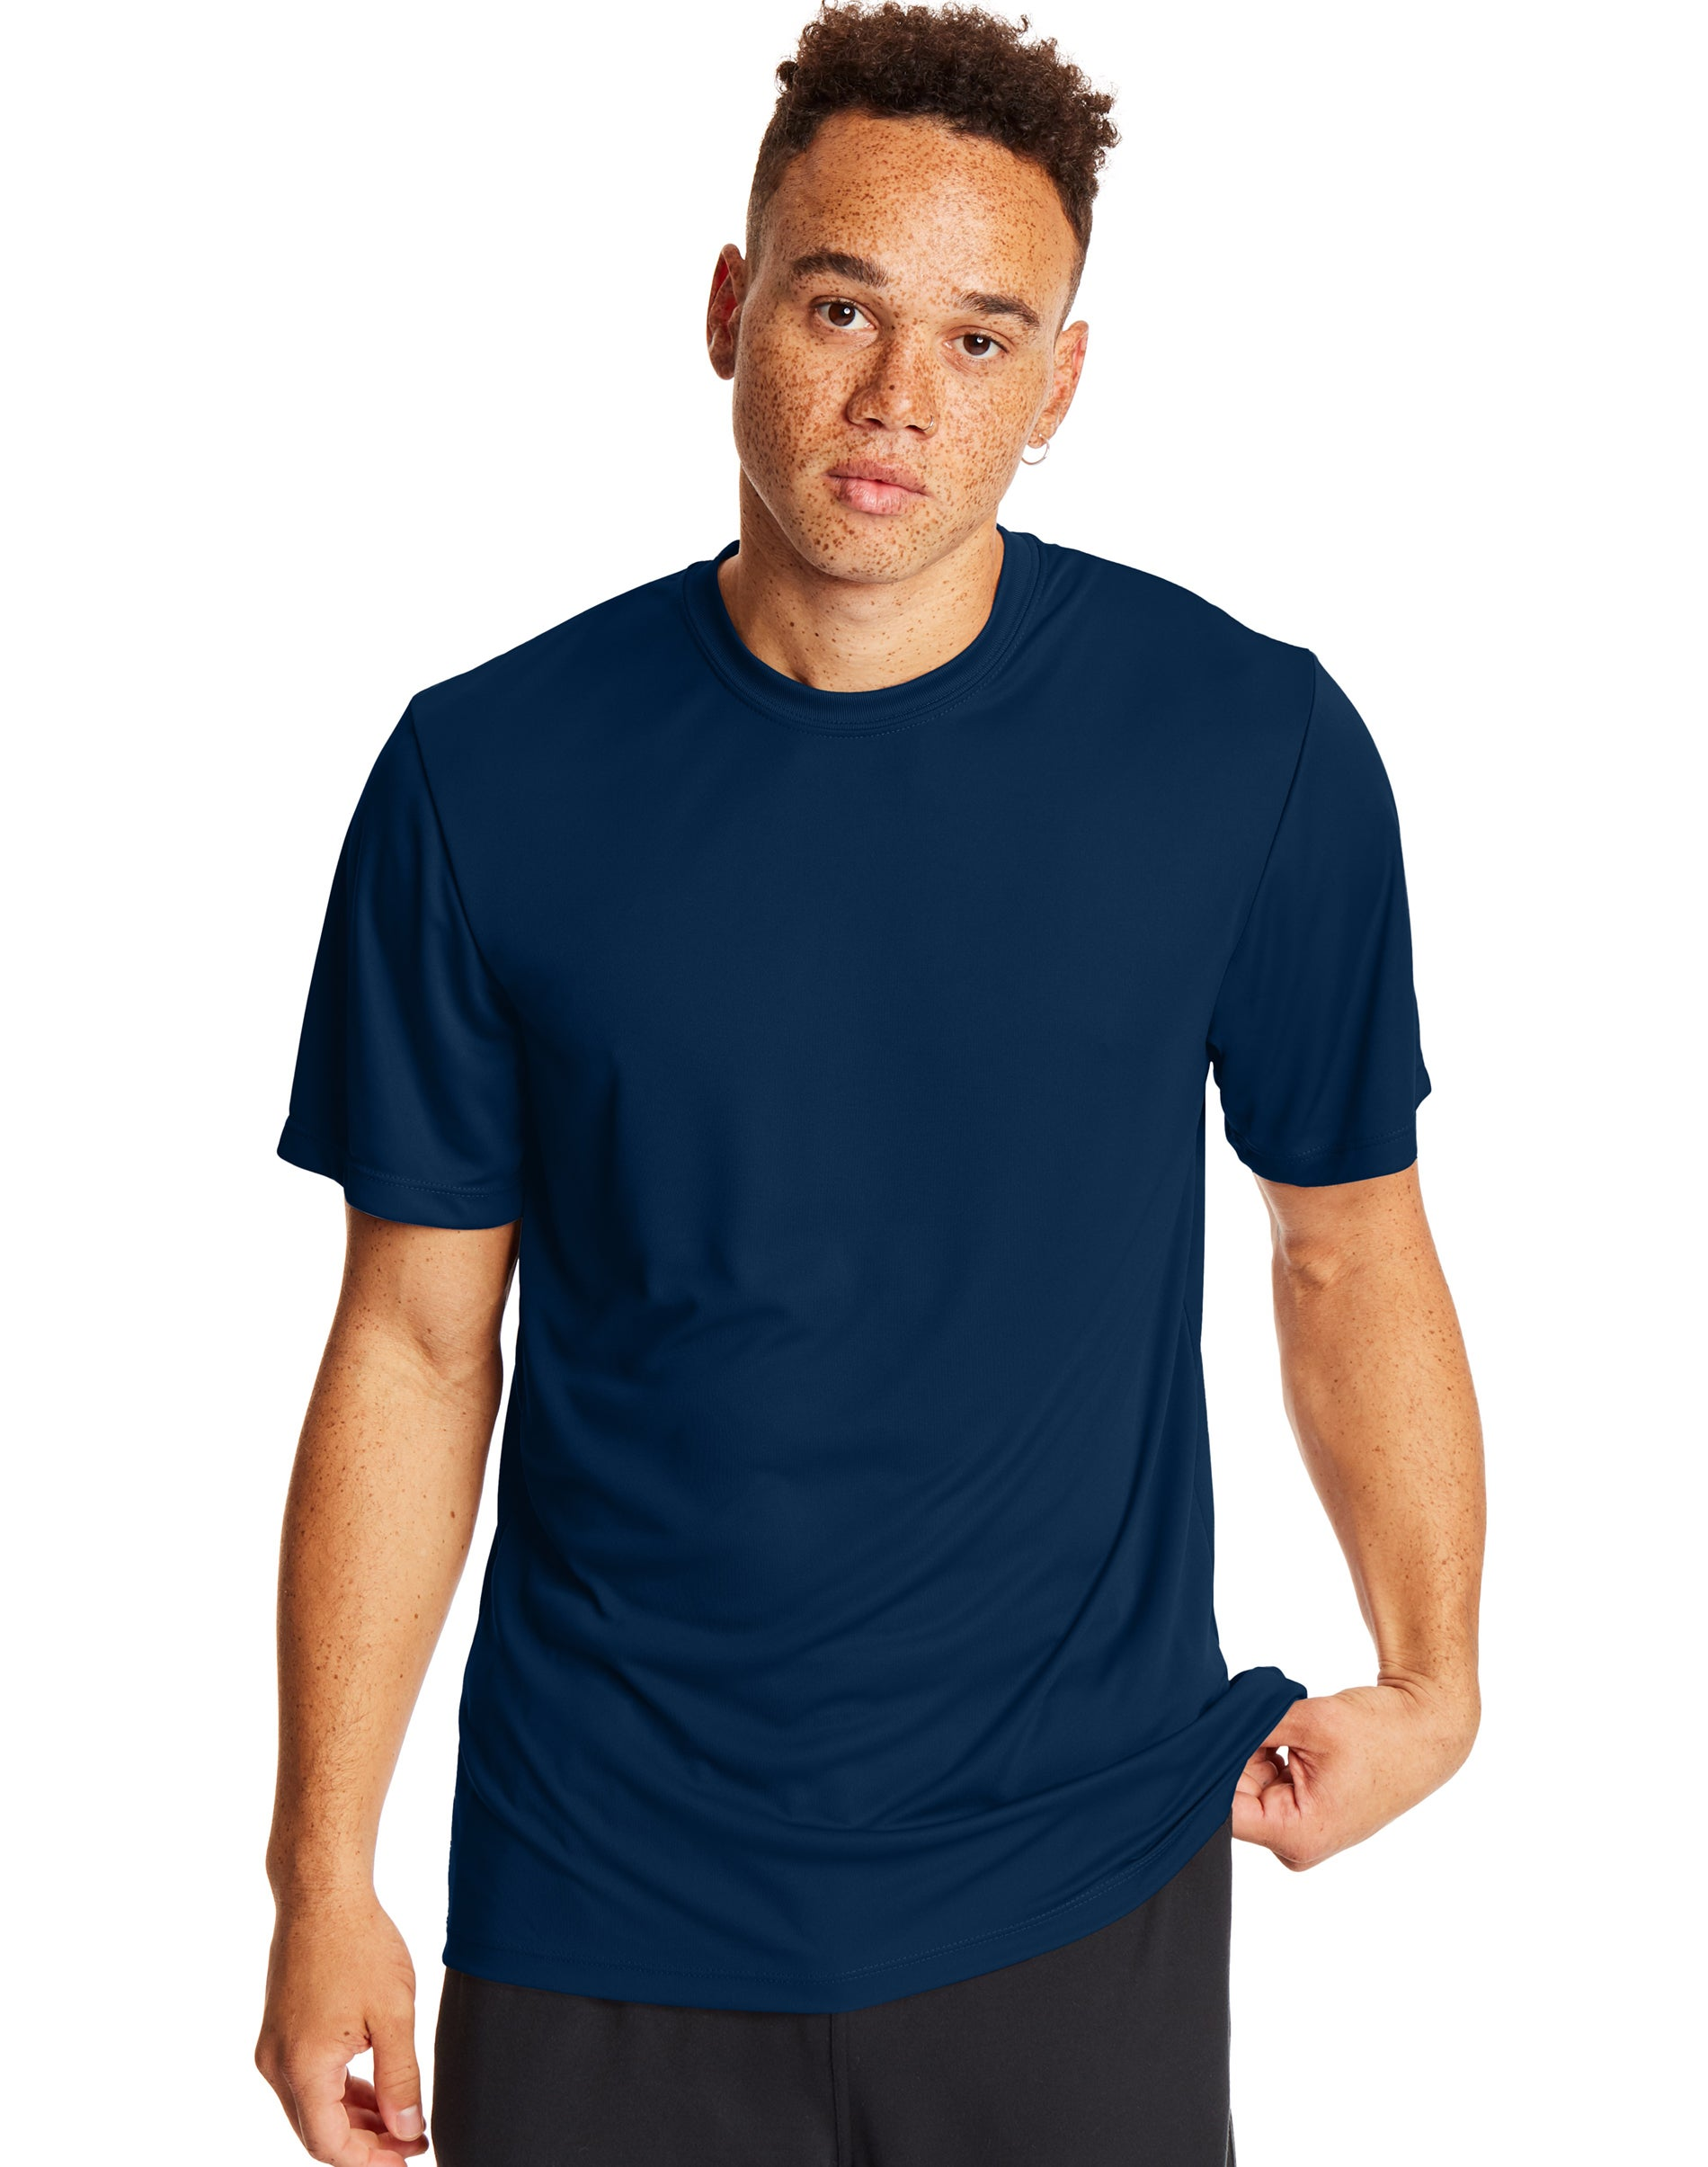 15 COLORS Hanes Adult X-Temp Unisex Performance T-Shirt Tagless S-3XL